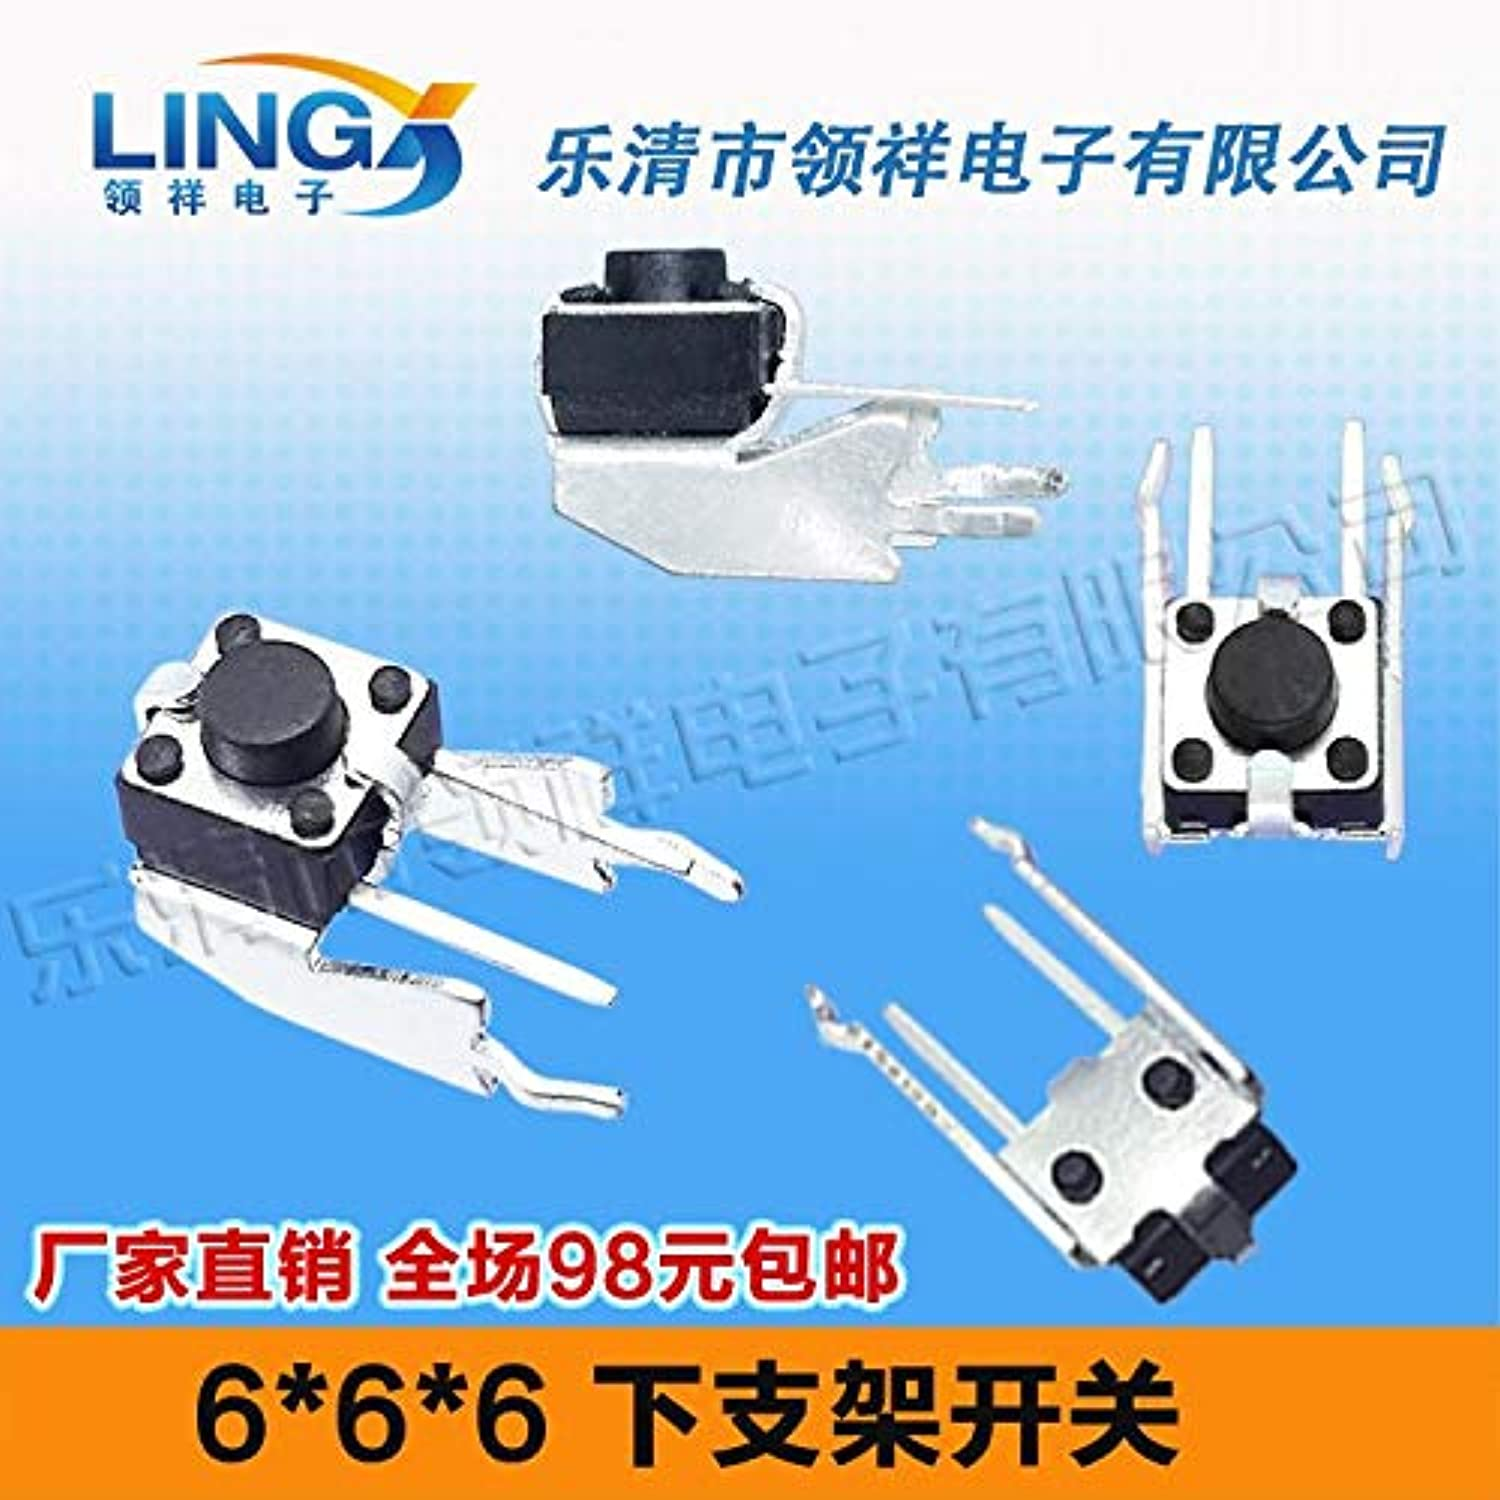 Horizontal Lower Bracket 6  6  6mm Long Legs Touch Switch with Stand Side by greenical Jog Button 6X6